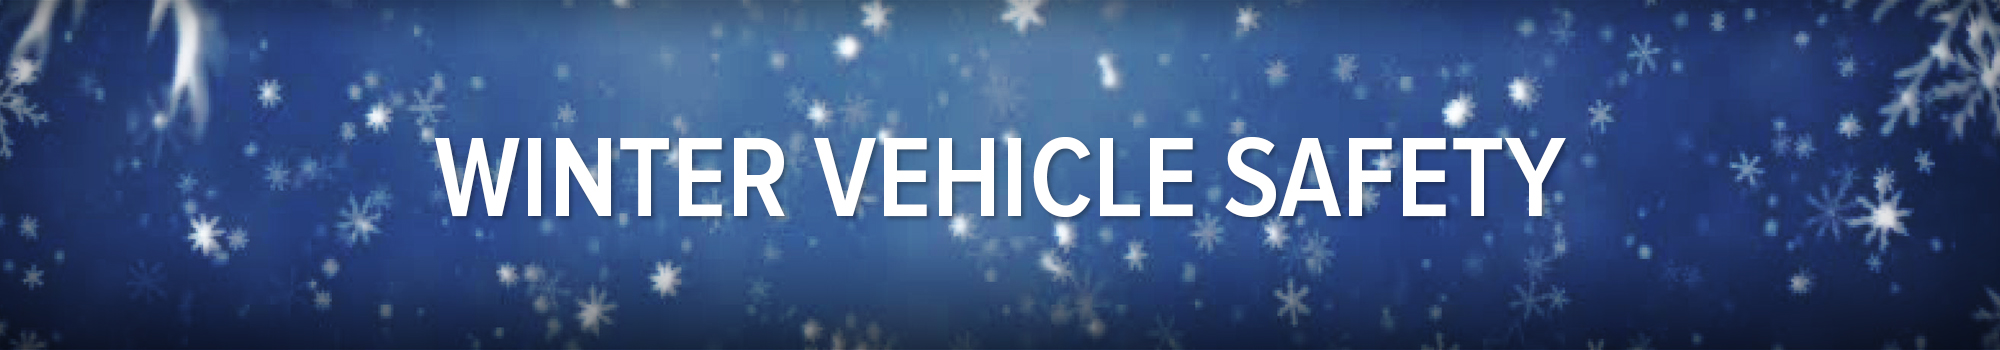 winter vehicle safety